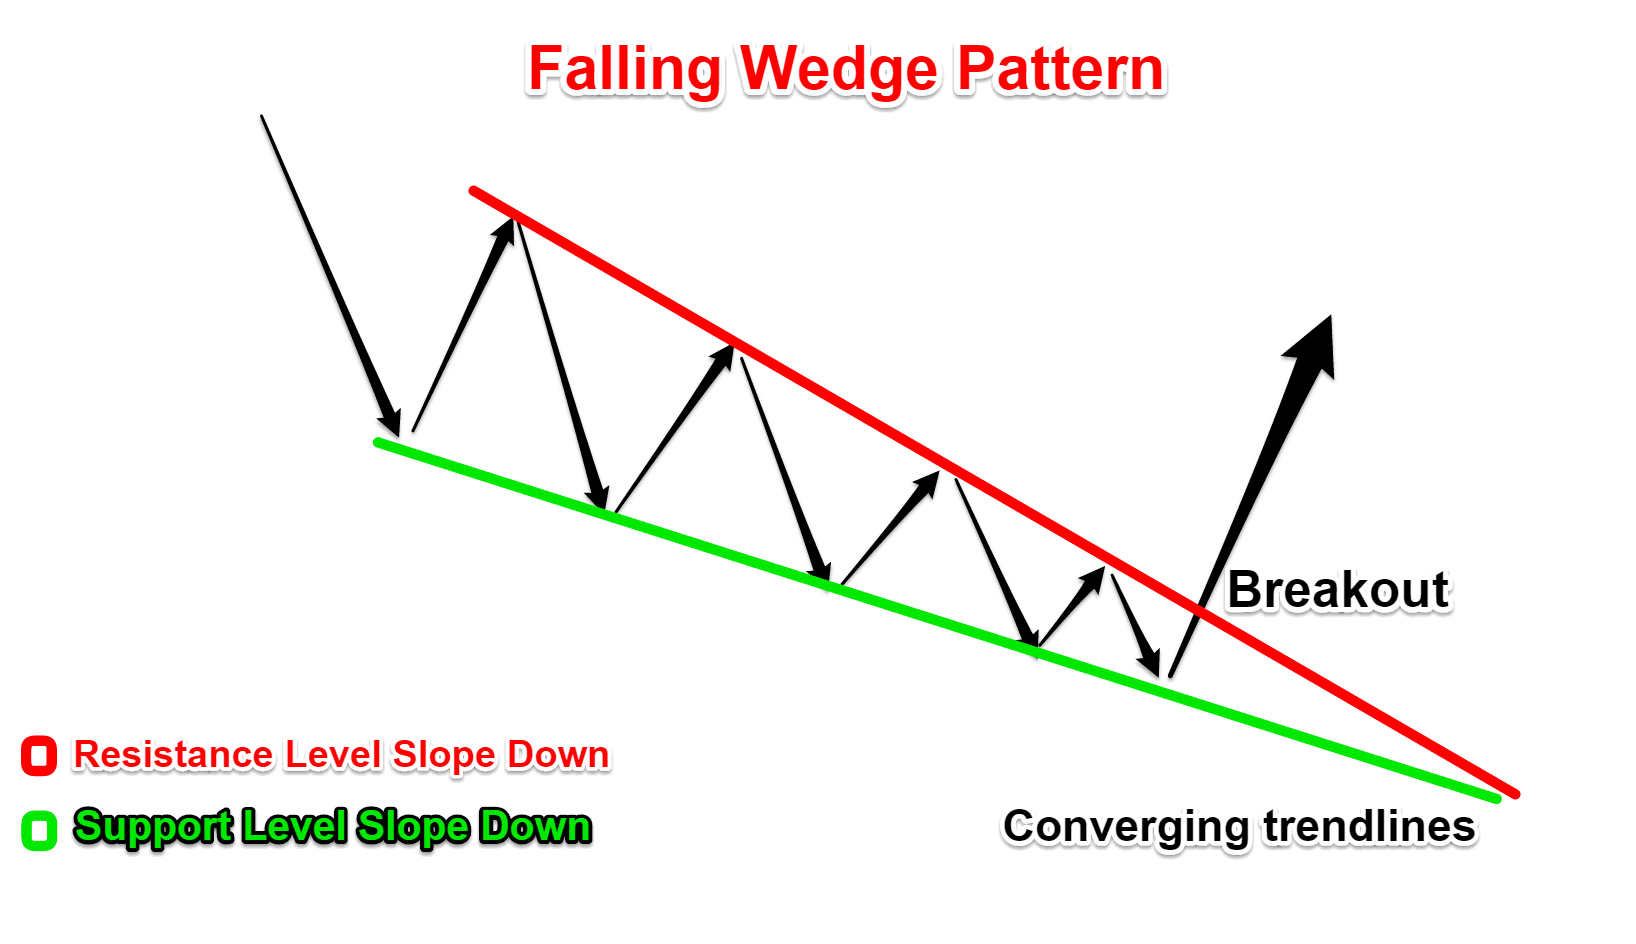 The Falling Wedge Pattern